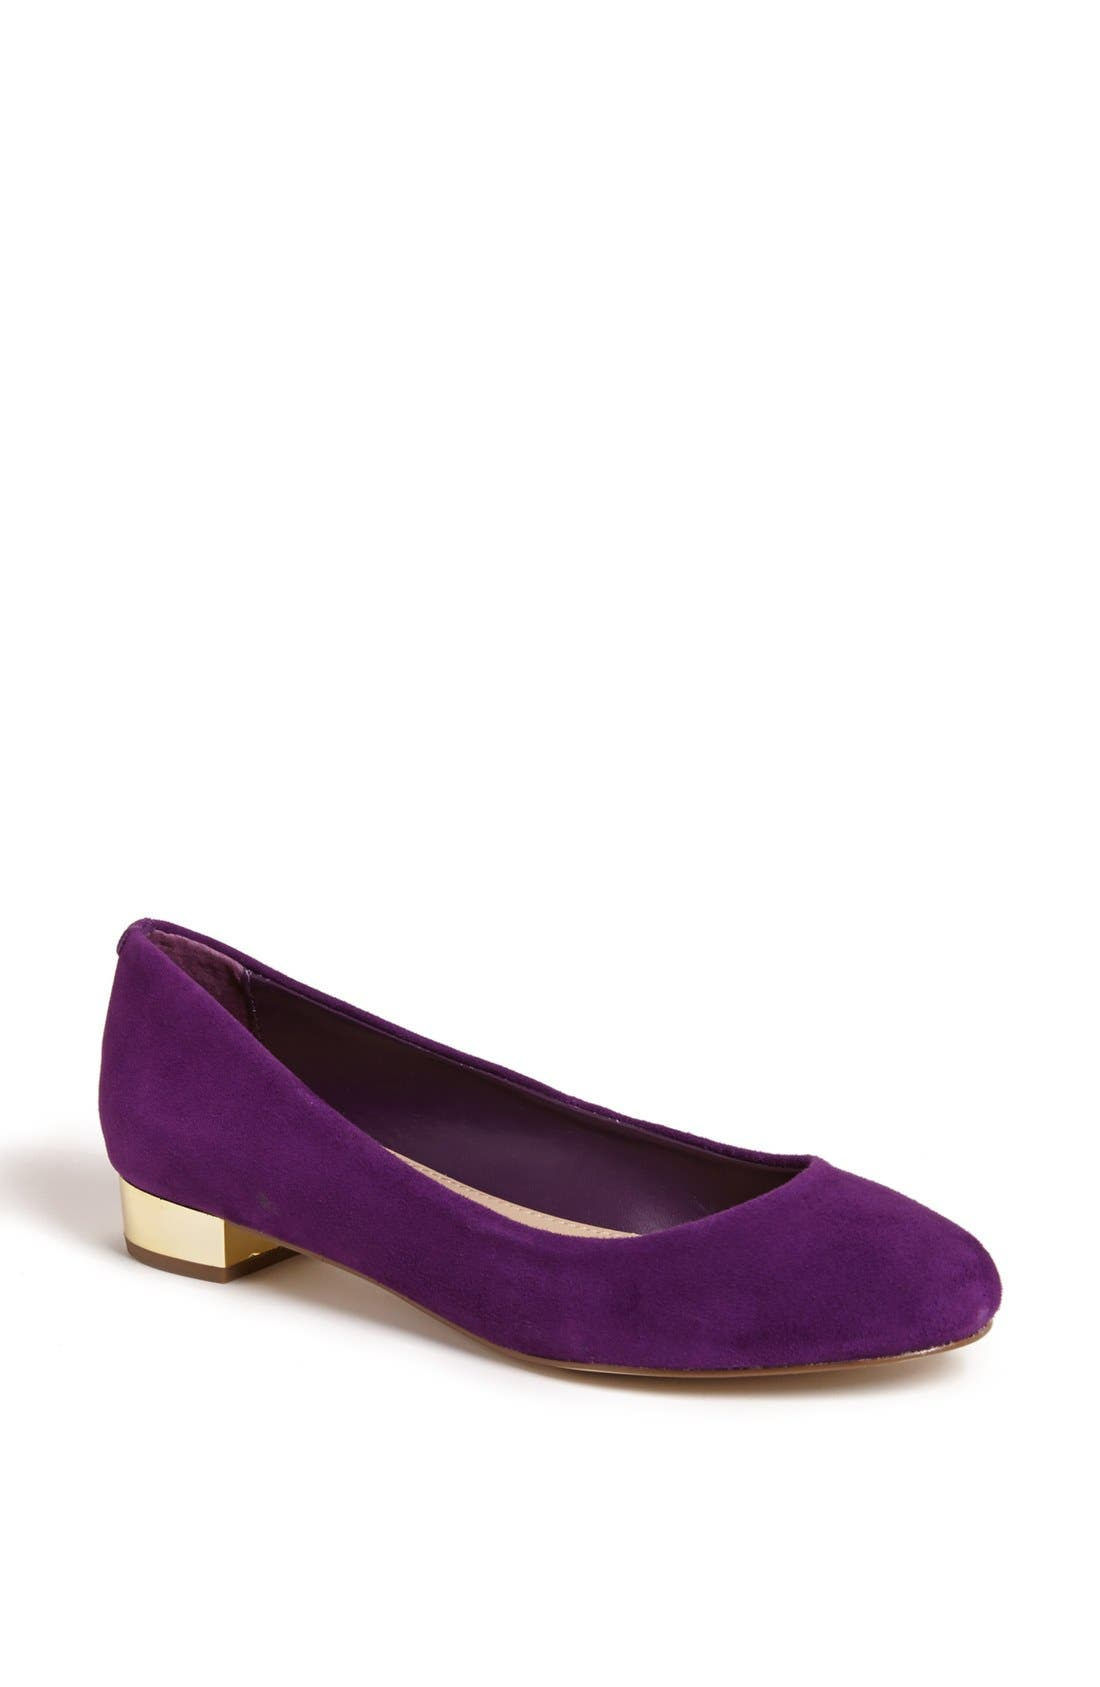 Main Image - Steven by Steve Madden 'Paigge' Flat